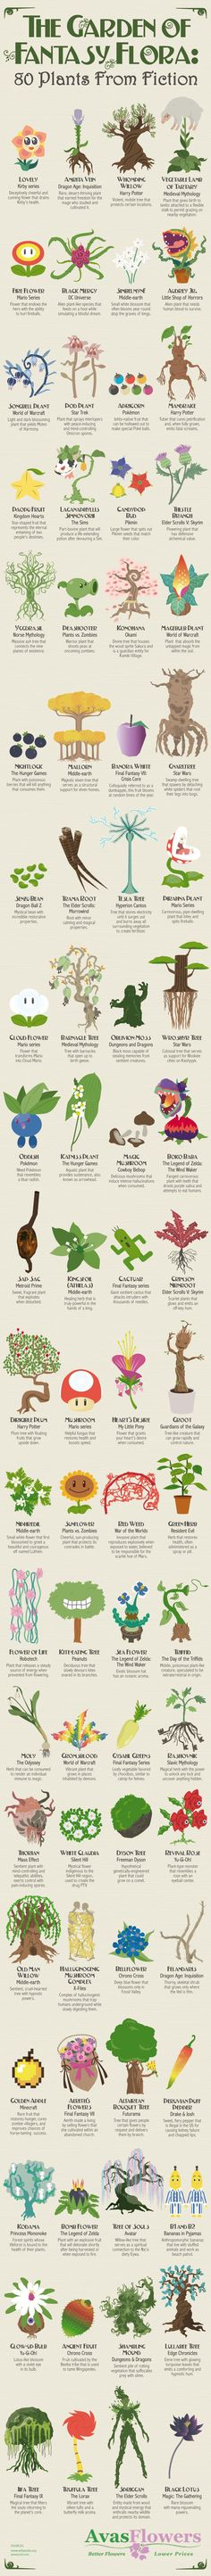 The Most Iconic Fictional Plants of All Time  #Imgur #MedinaLibrary #FictionalPlants